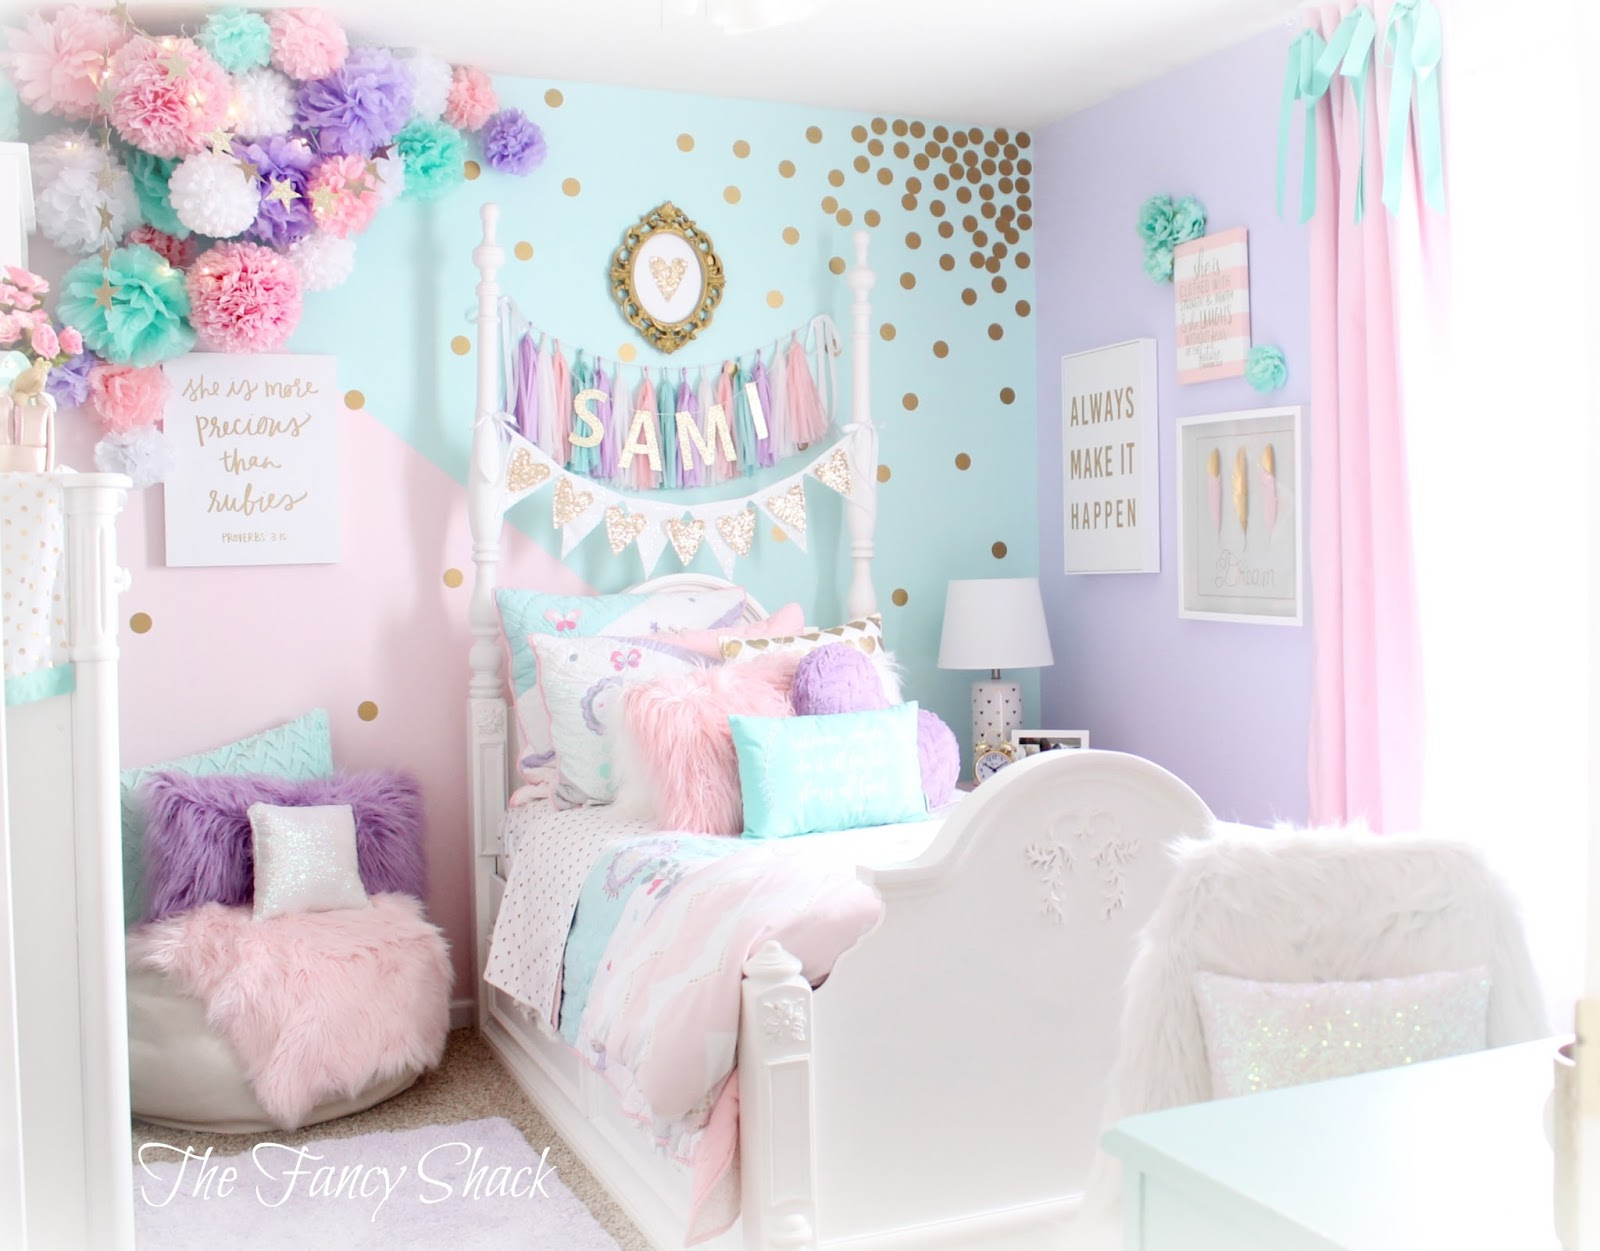 Cute Girly Wallpaper For Bedroom The Fancy Shack Pastel Girls Room Makeover